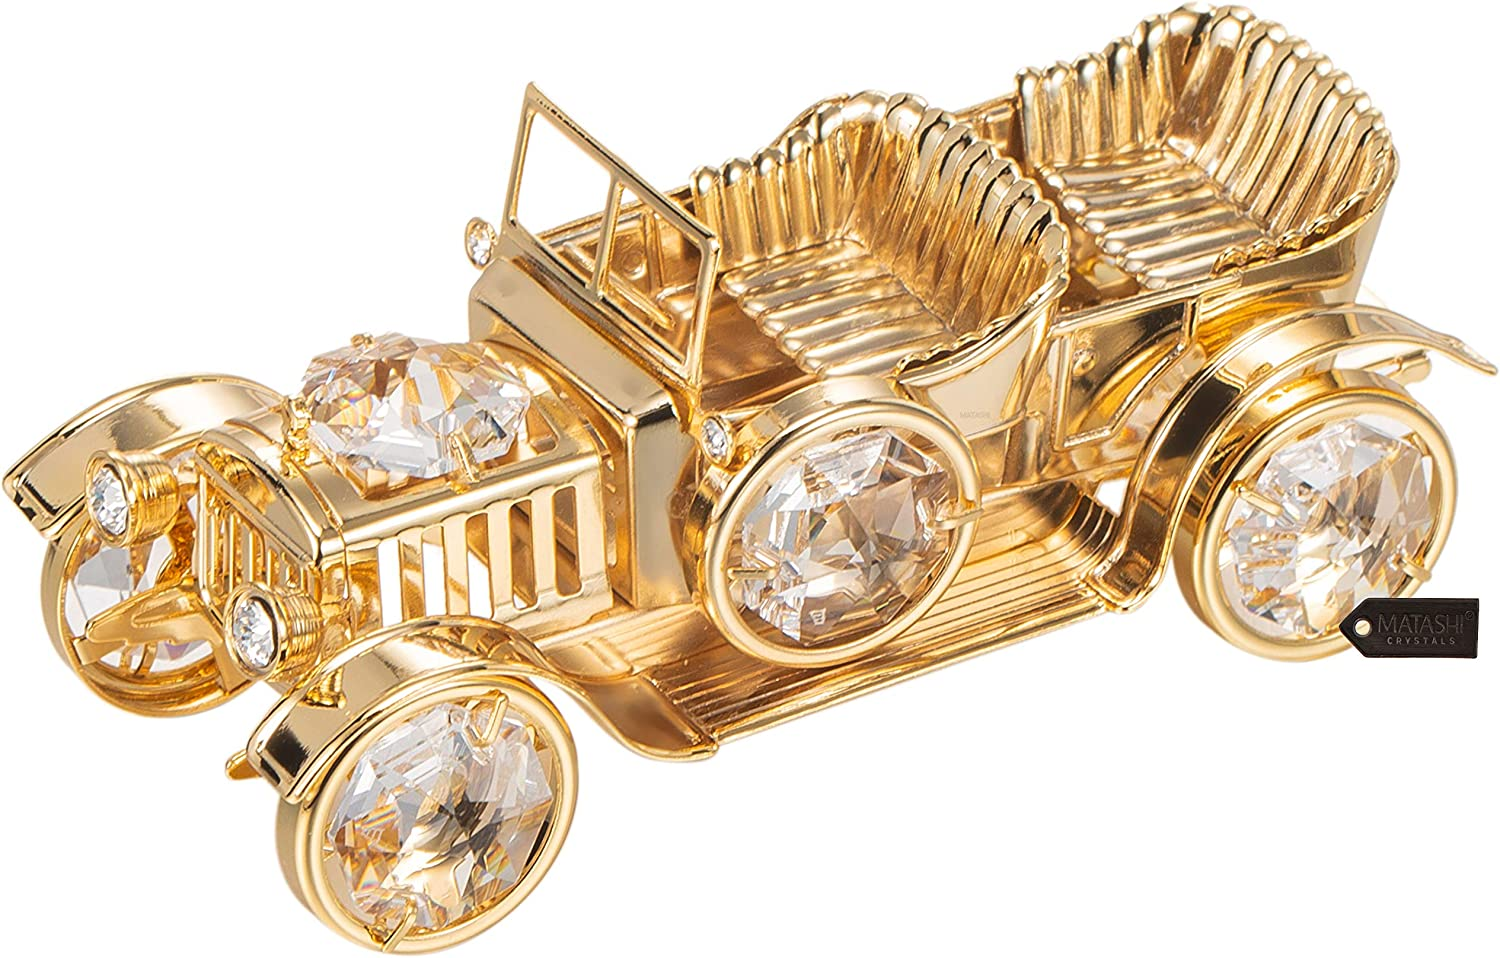 Matashi 24K Gold Plated Crystal Studded Vintage Car Ornament Classic Home Decor Desktop Decoration Showpiece Gift for Christmas Holiday New Year Birthday Ideal Gift for Friend Brother Son Children